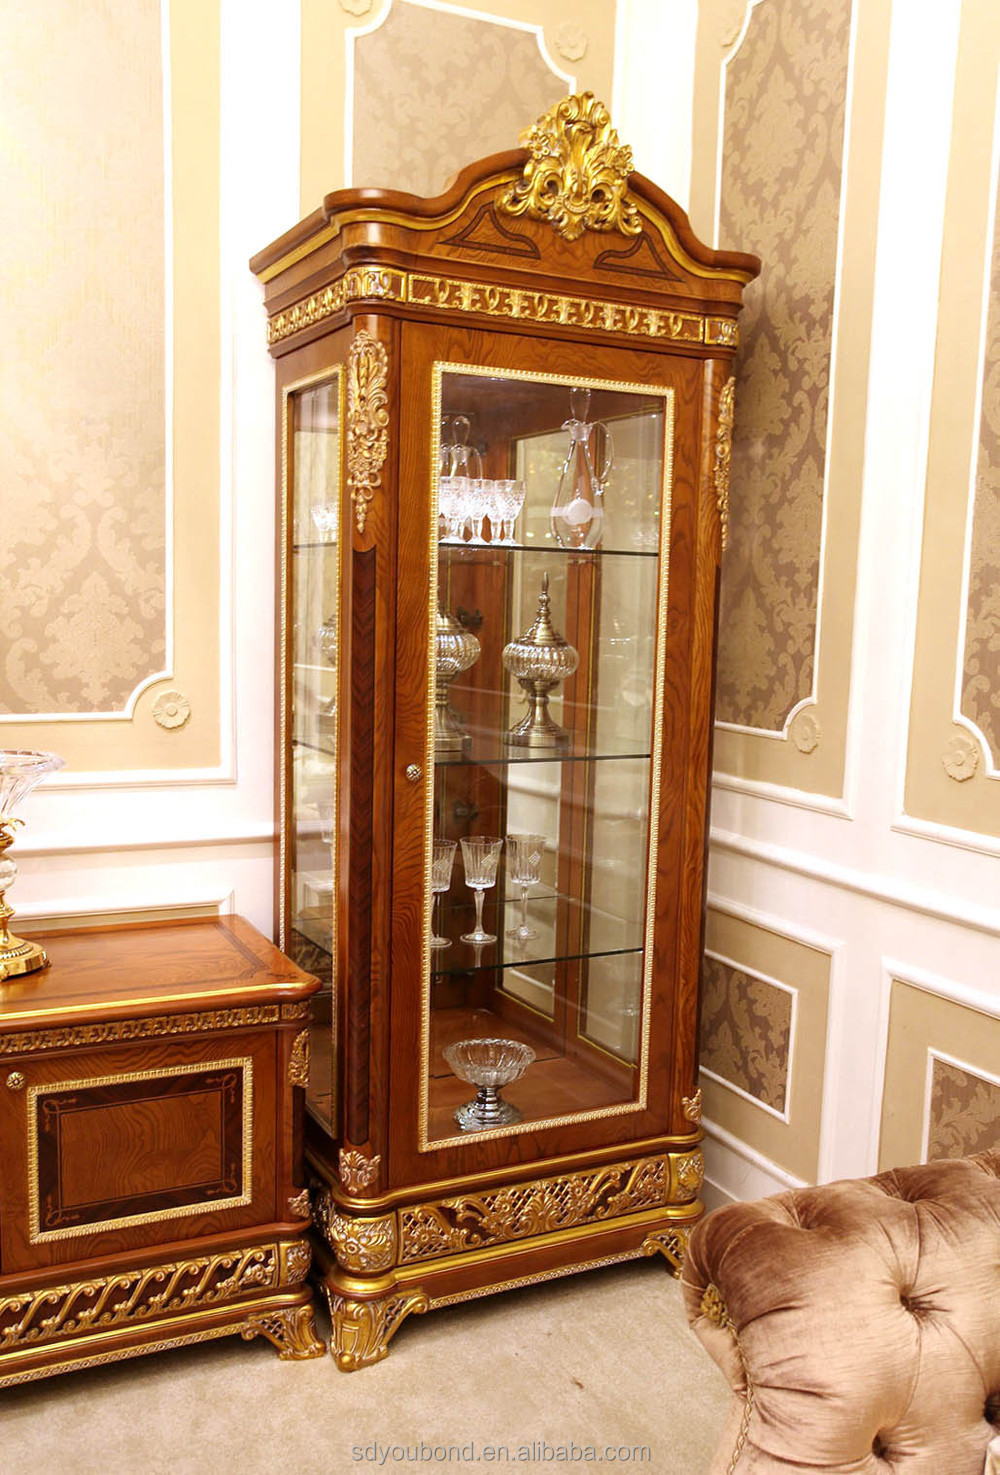 2015 0062 Italian Classic Antique Living Room Display